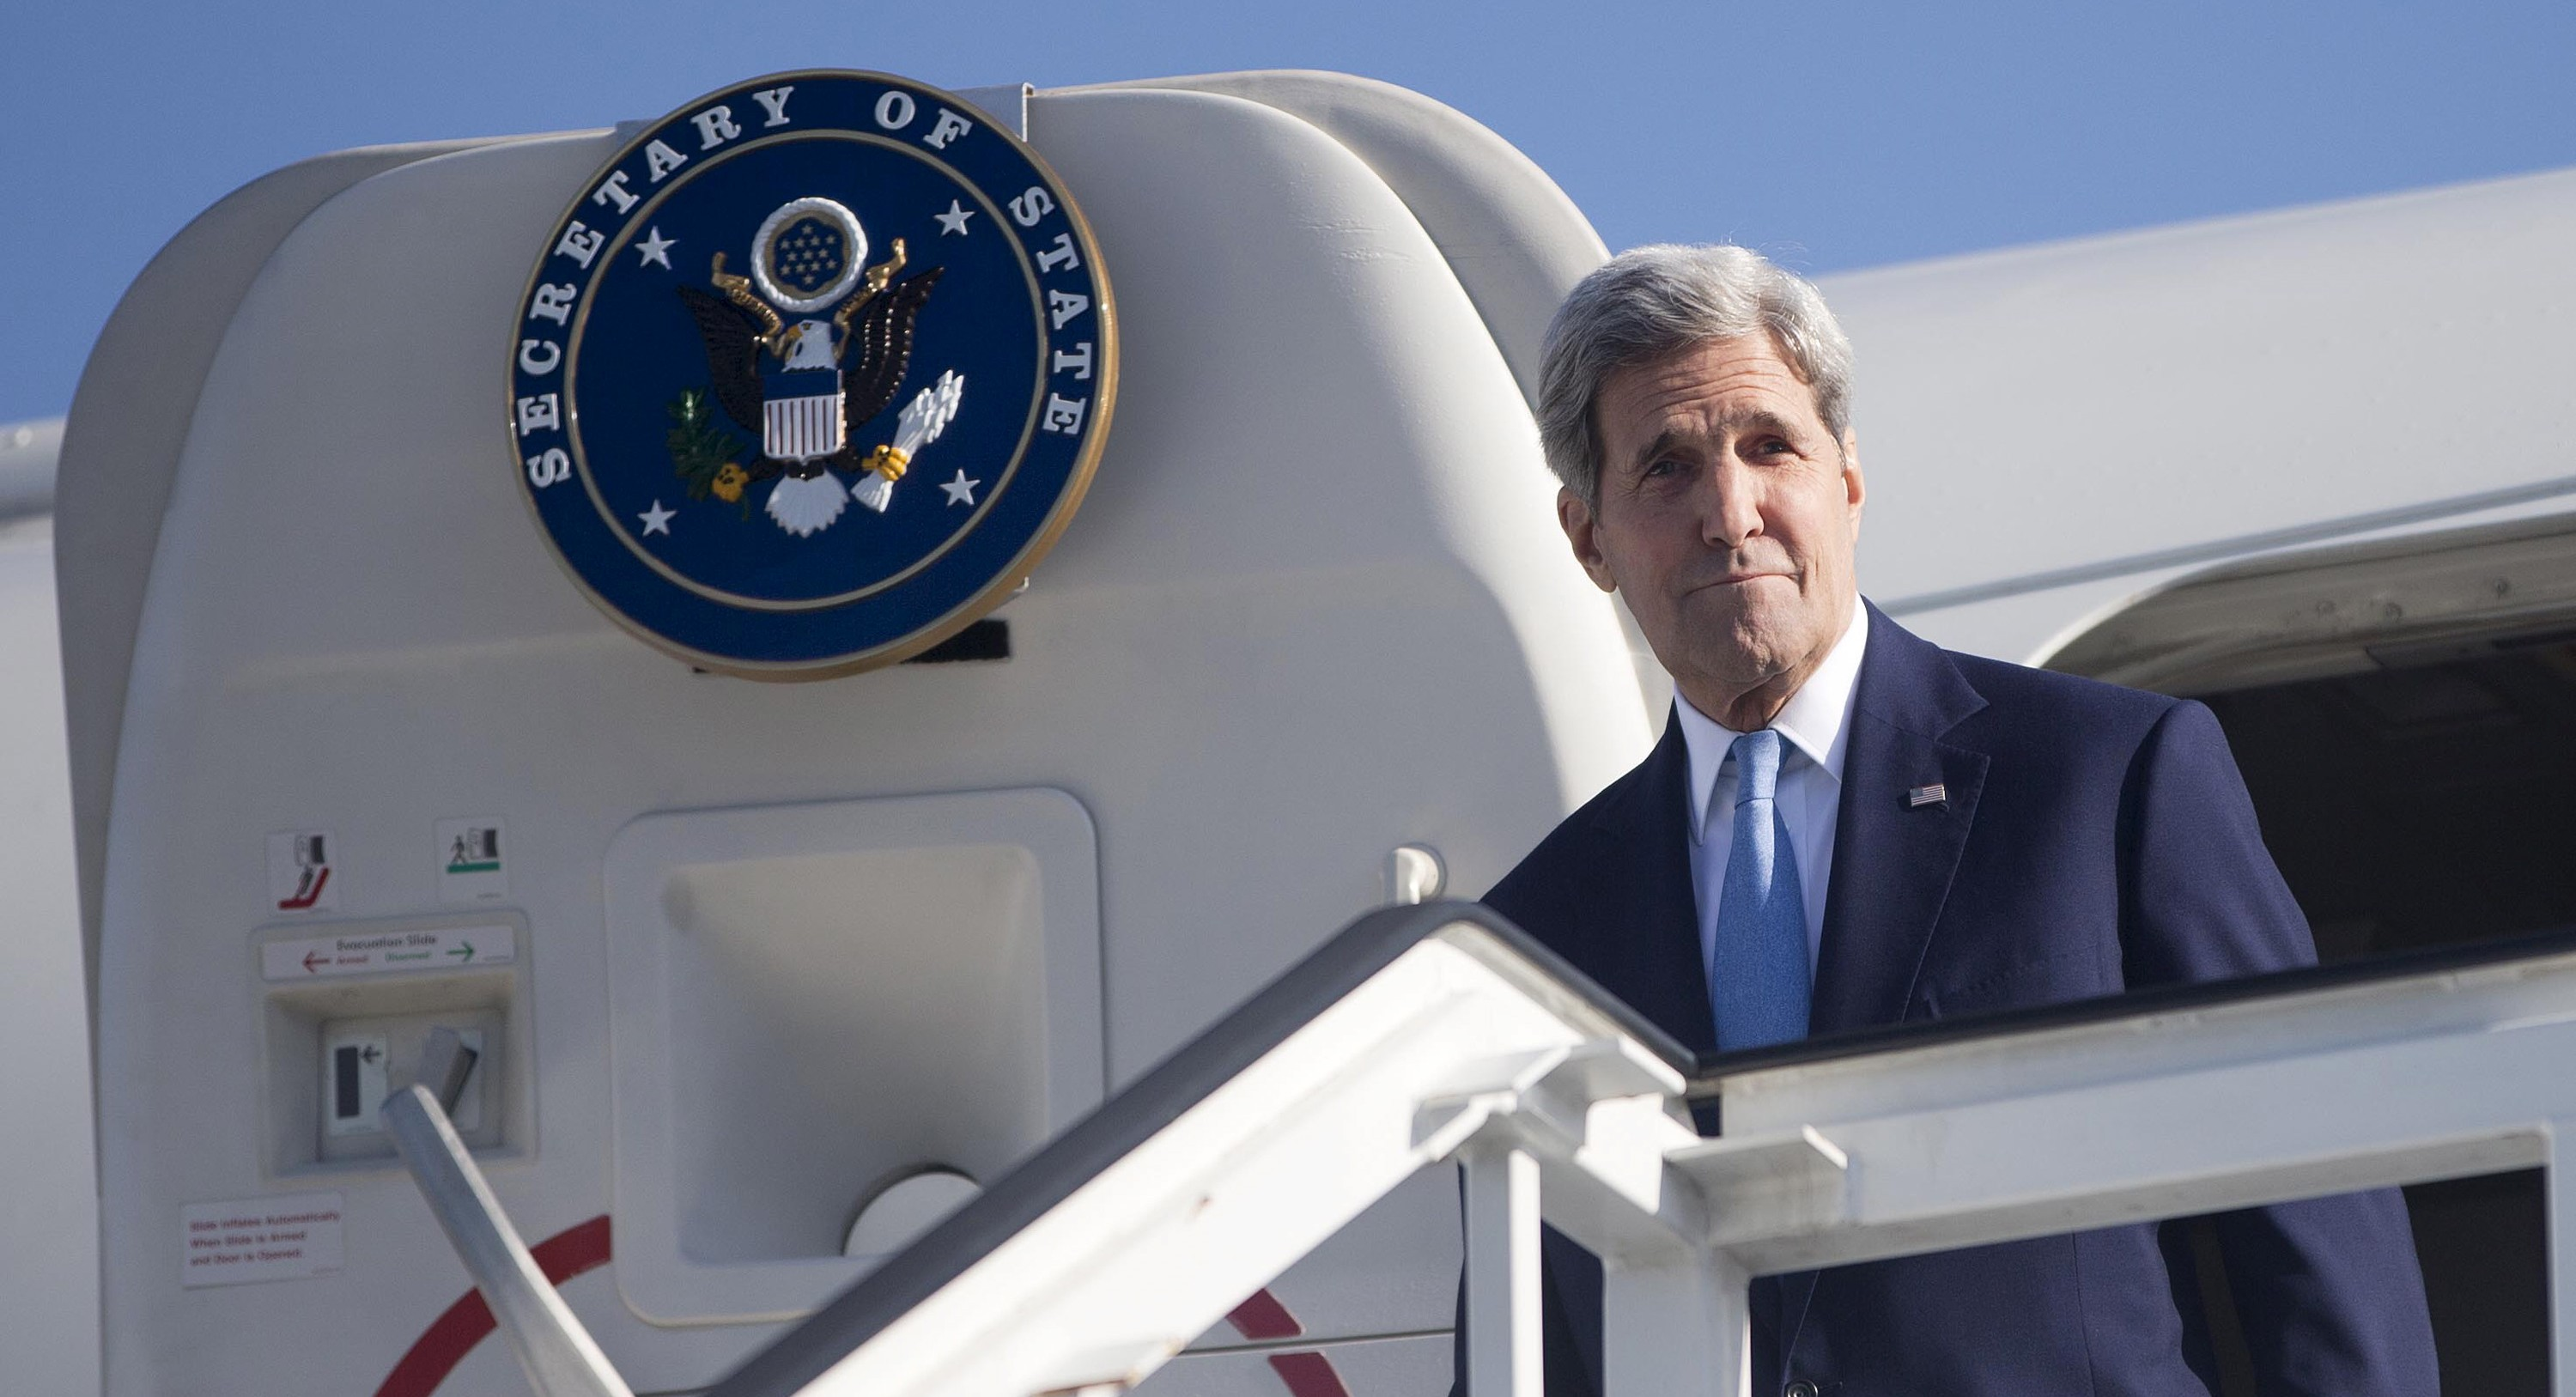 Secretary of State John Kerry arrives at Jose Marti International Airport in Havana, Cuba, August 14, 2015. Kerry arrived in Cuba on Friday to raise the U.S. flag at the recently restored American Embassy in Havana, another symbolic step in improved relations between the two Cold War-era foes. REUTERS/Pablo Martinez Monsivais/Pool  - RTX1O9OU